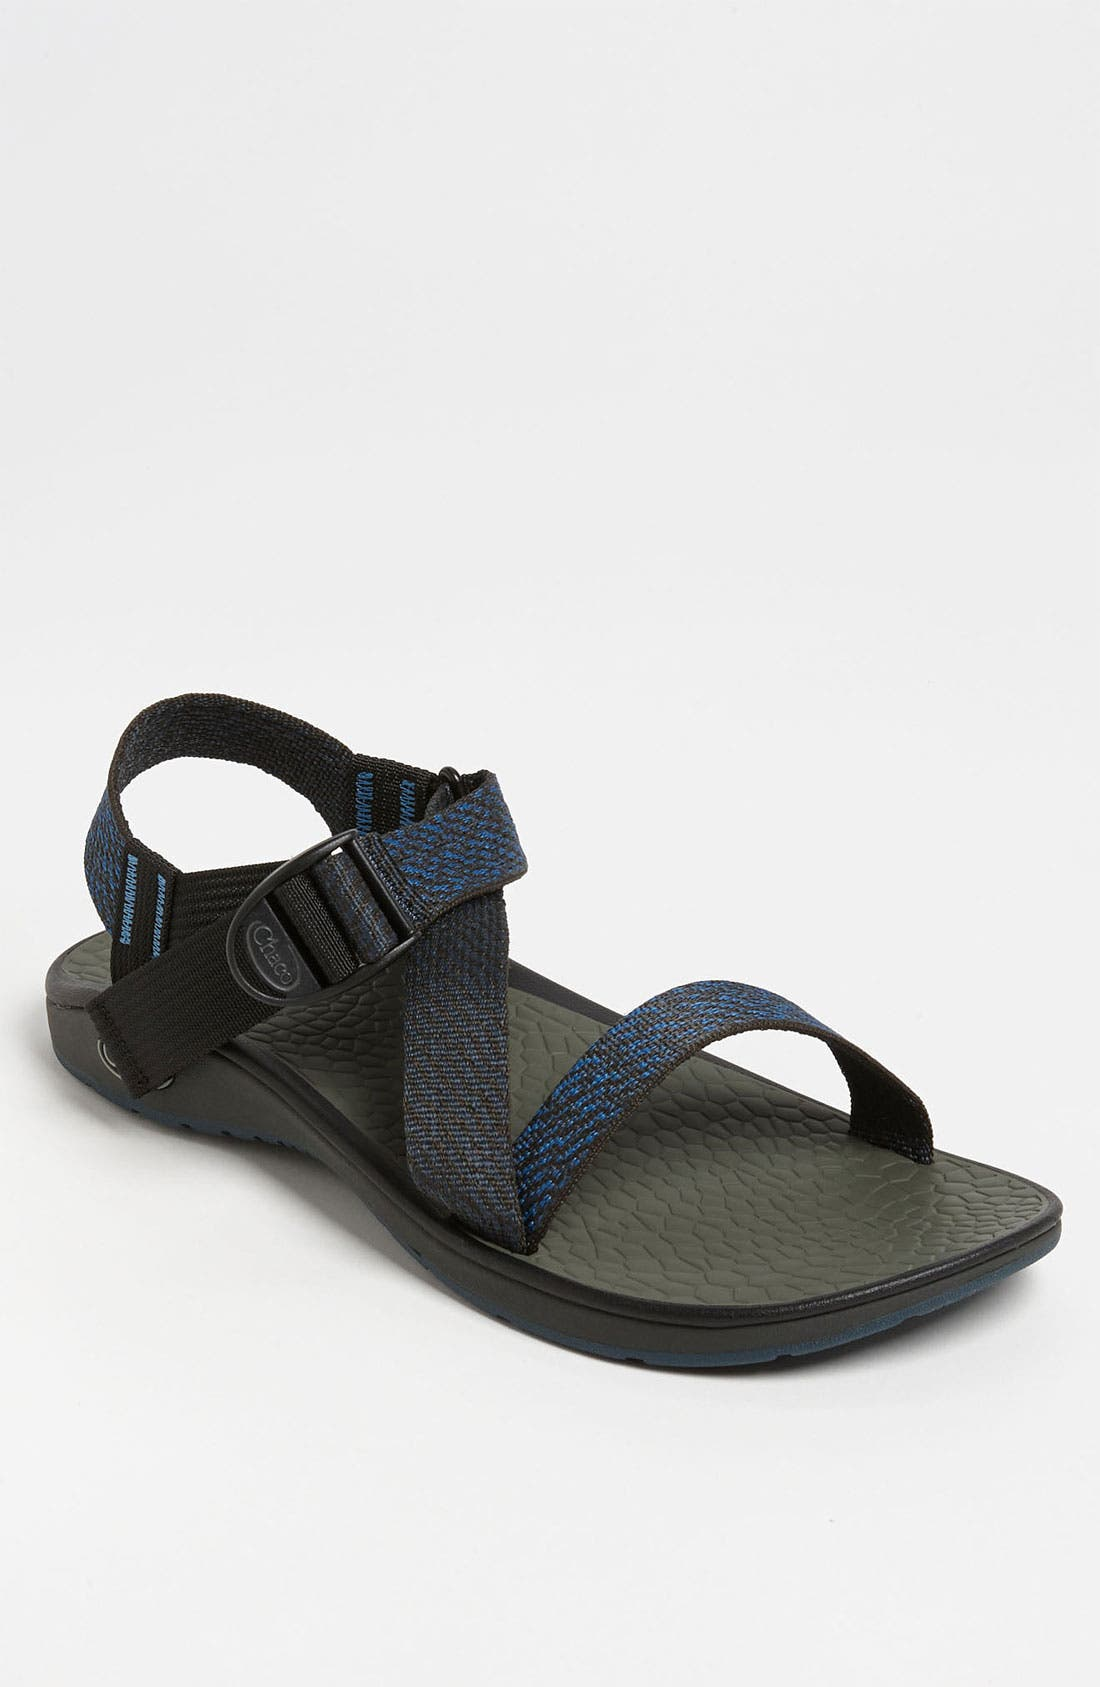 Alternate Image 1 Selected - Chaco 'Mighty' Sandal